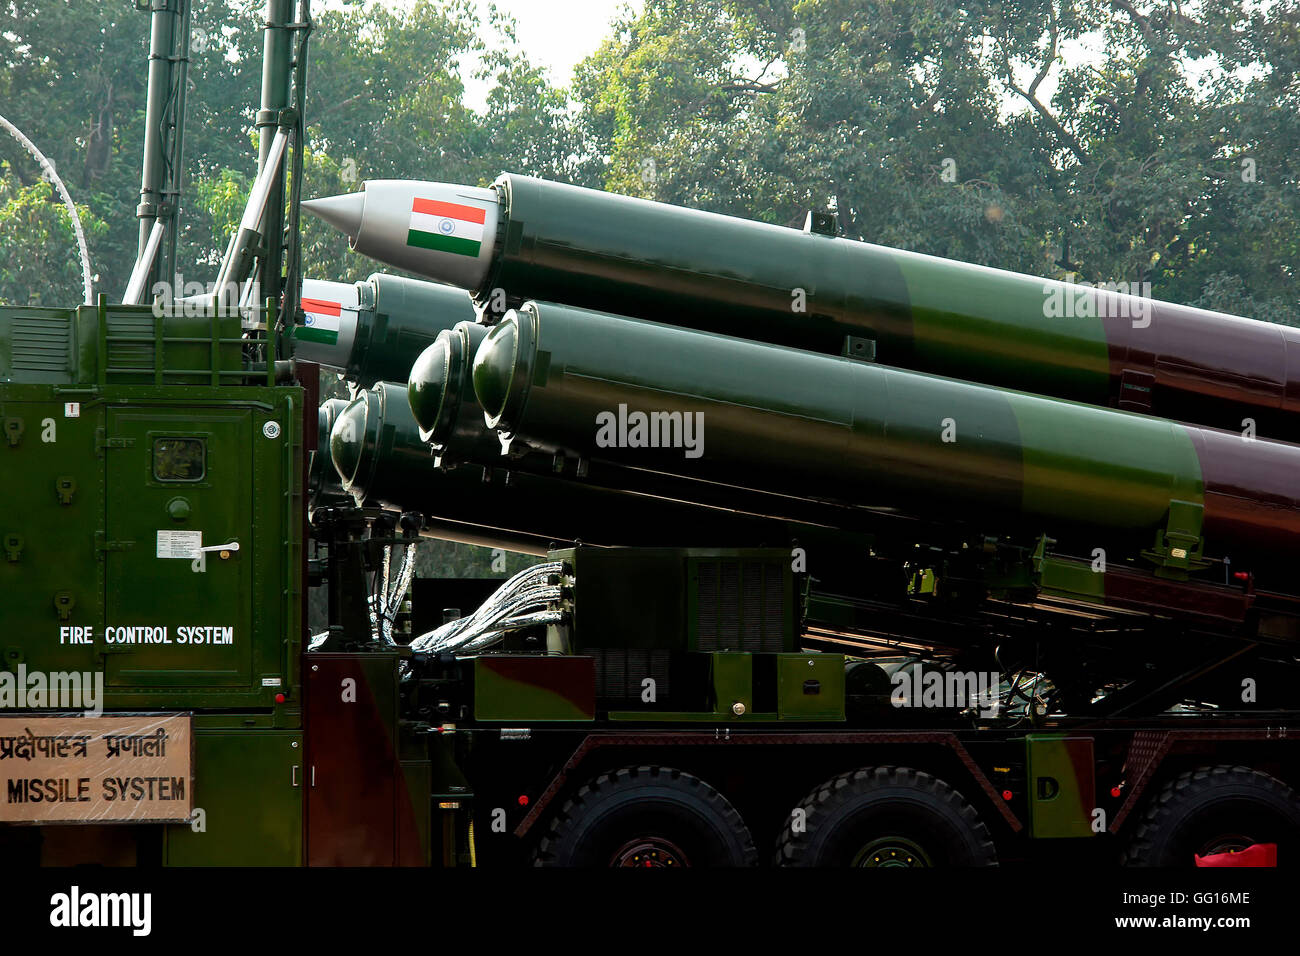 Missile weaponry Republic Day Parade India Arms warfare New Delhi, India - Stock Image